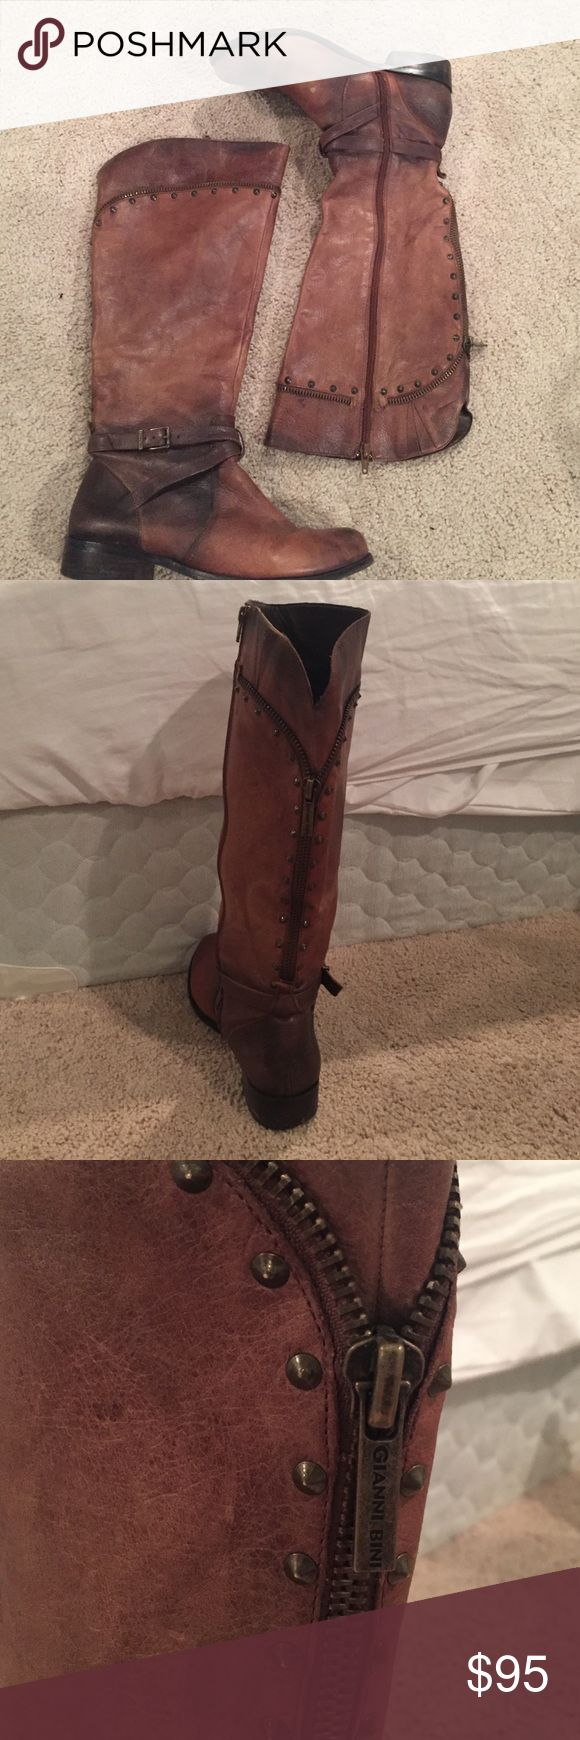 Gianni Bini riding boots! Awesome fall riding boots! Gianni Bini Shoes Over the Knee Boots